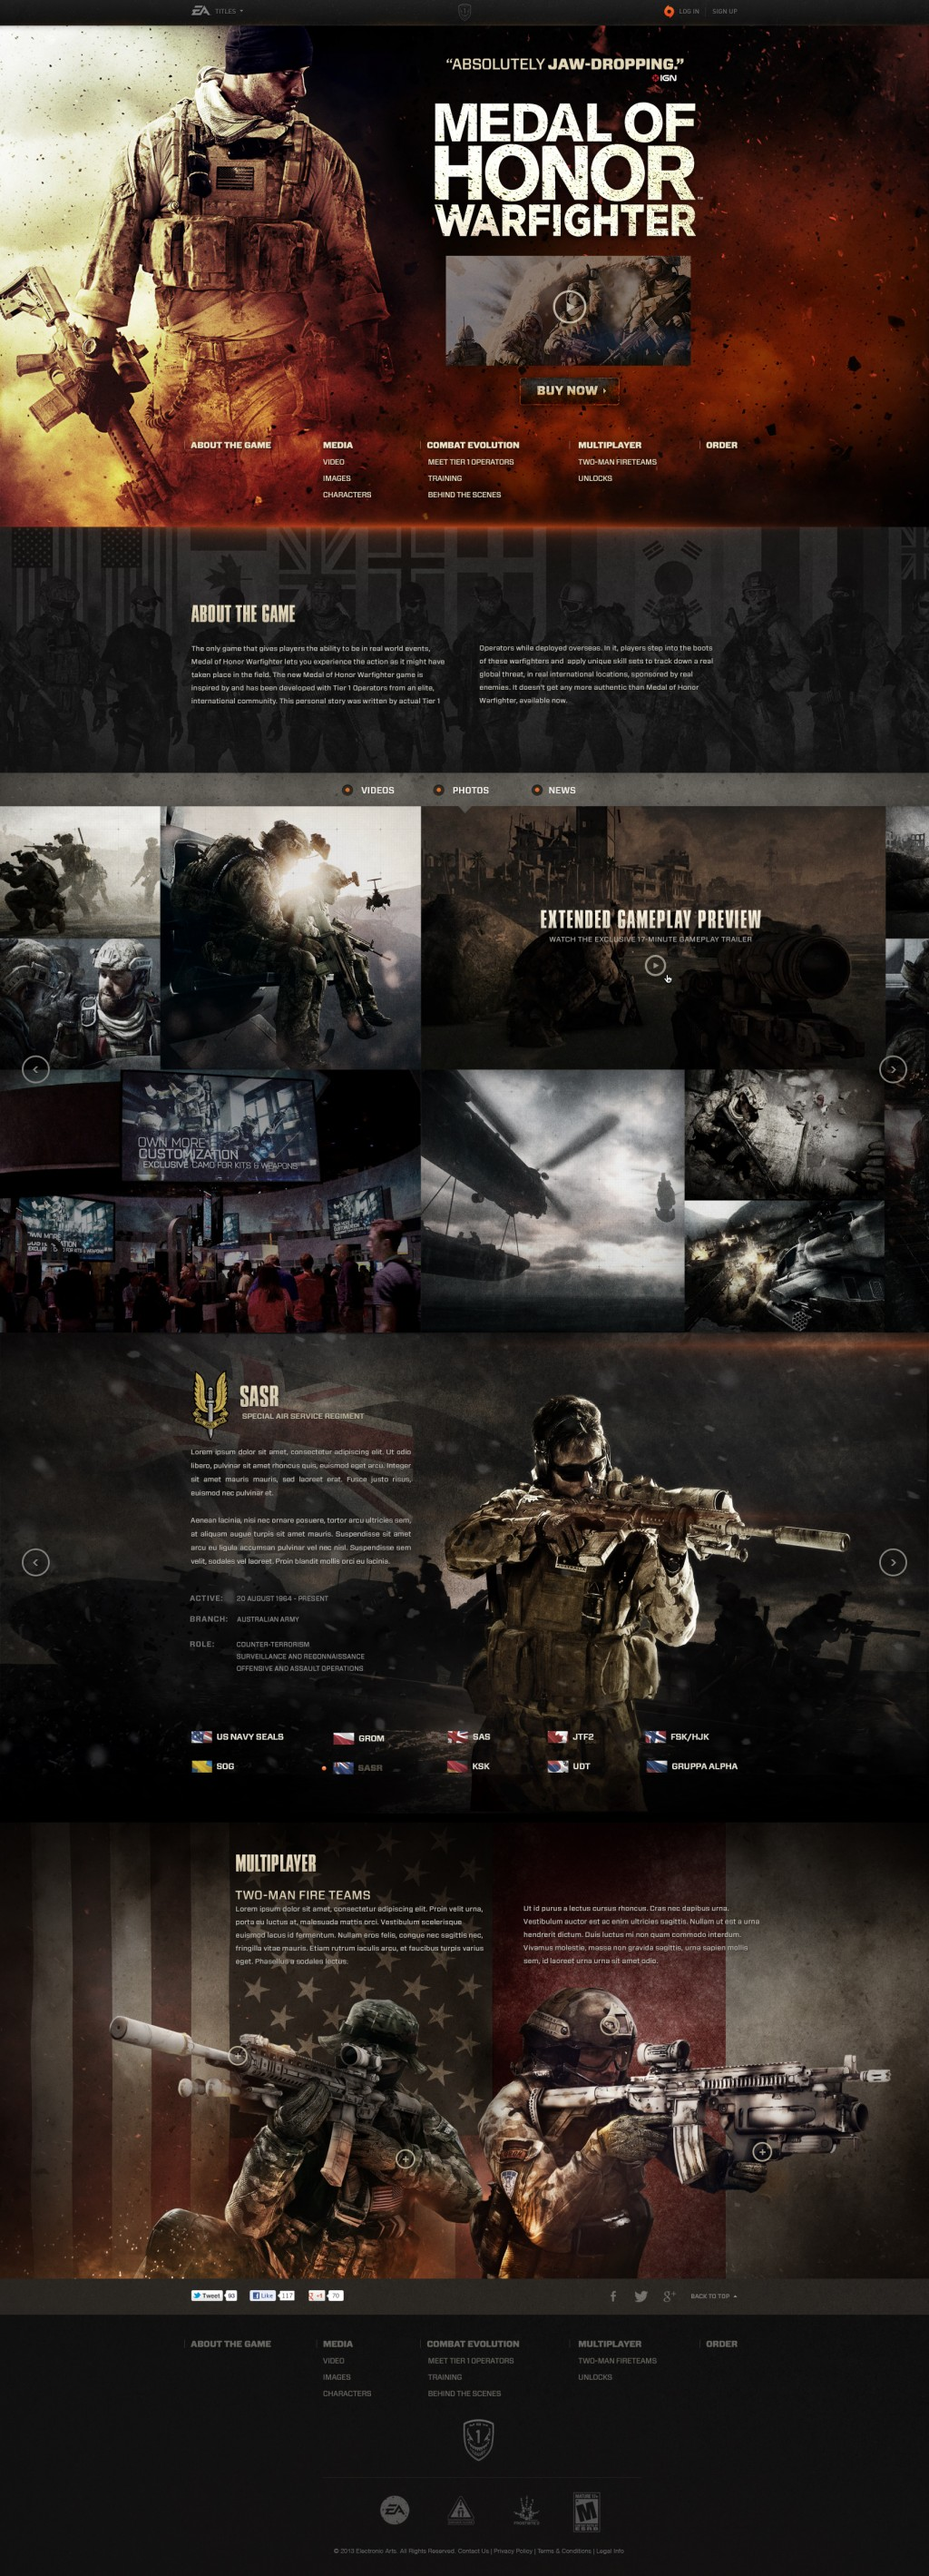 Medal of Honor Warfighter Site Redesign